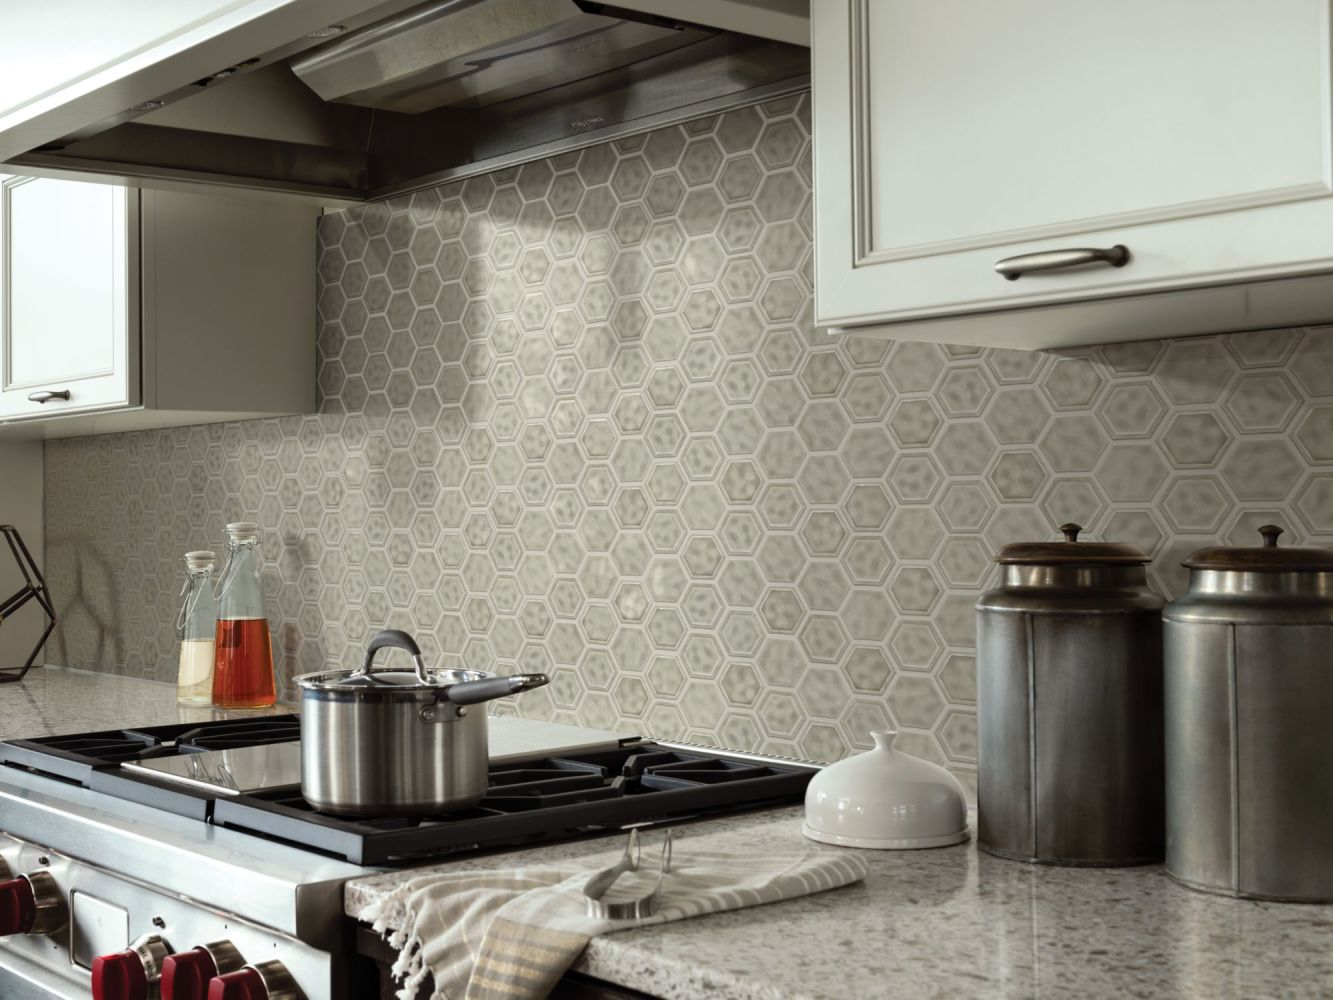 Shaw Floors Home Fn Gold Ceramic Geoscapes Hexagon Taupe 00250_TGJ78